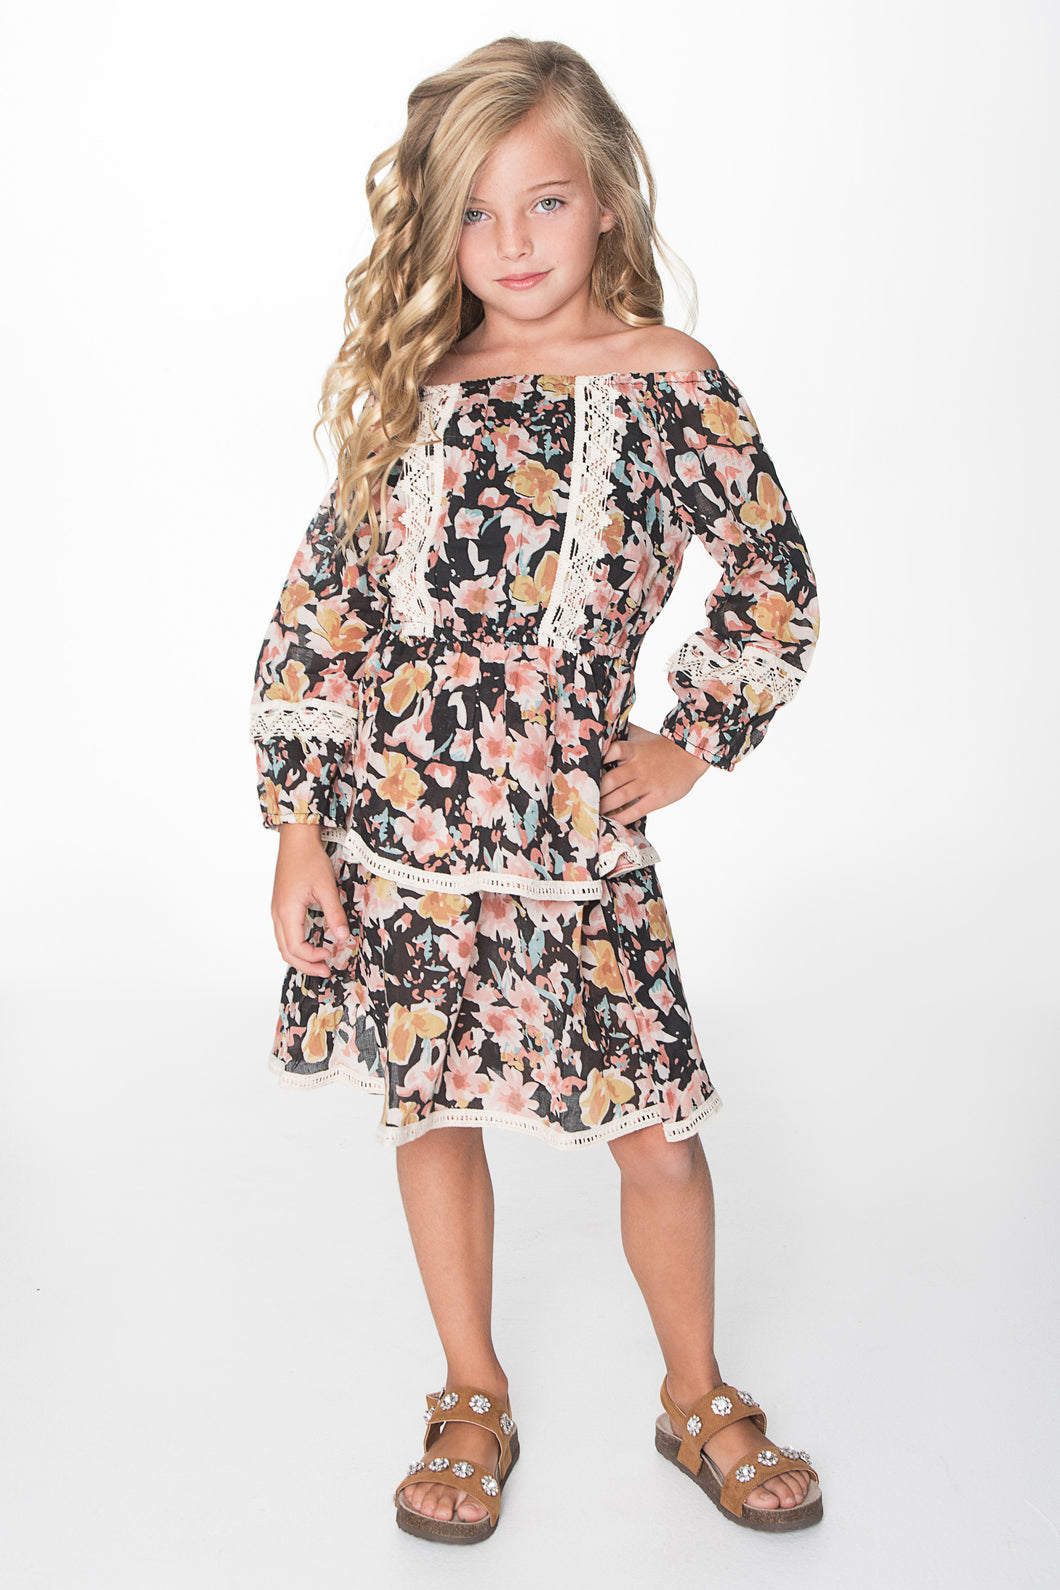 Black Floral print with Lace Detail Dress - Kids Wholesale Boutique Clothing, Dress - Girls Dresses, Yo Baby Wholesale - Yo Baby